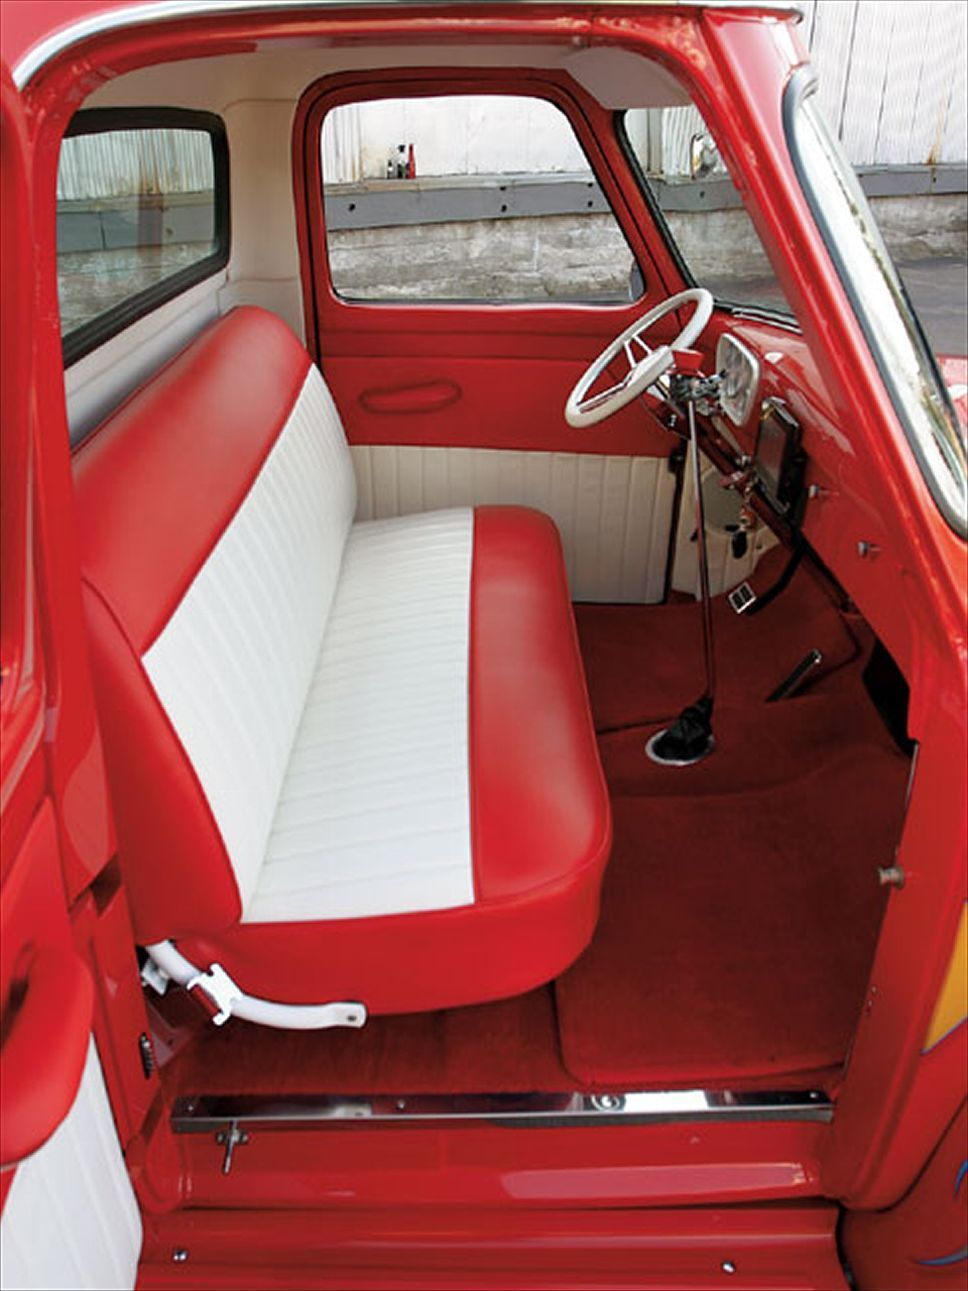 1954 Ford F100 Interior View Red And White Seats Pickup